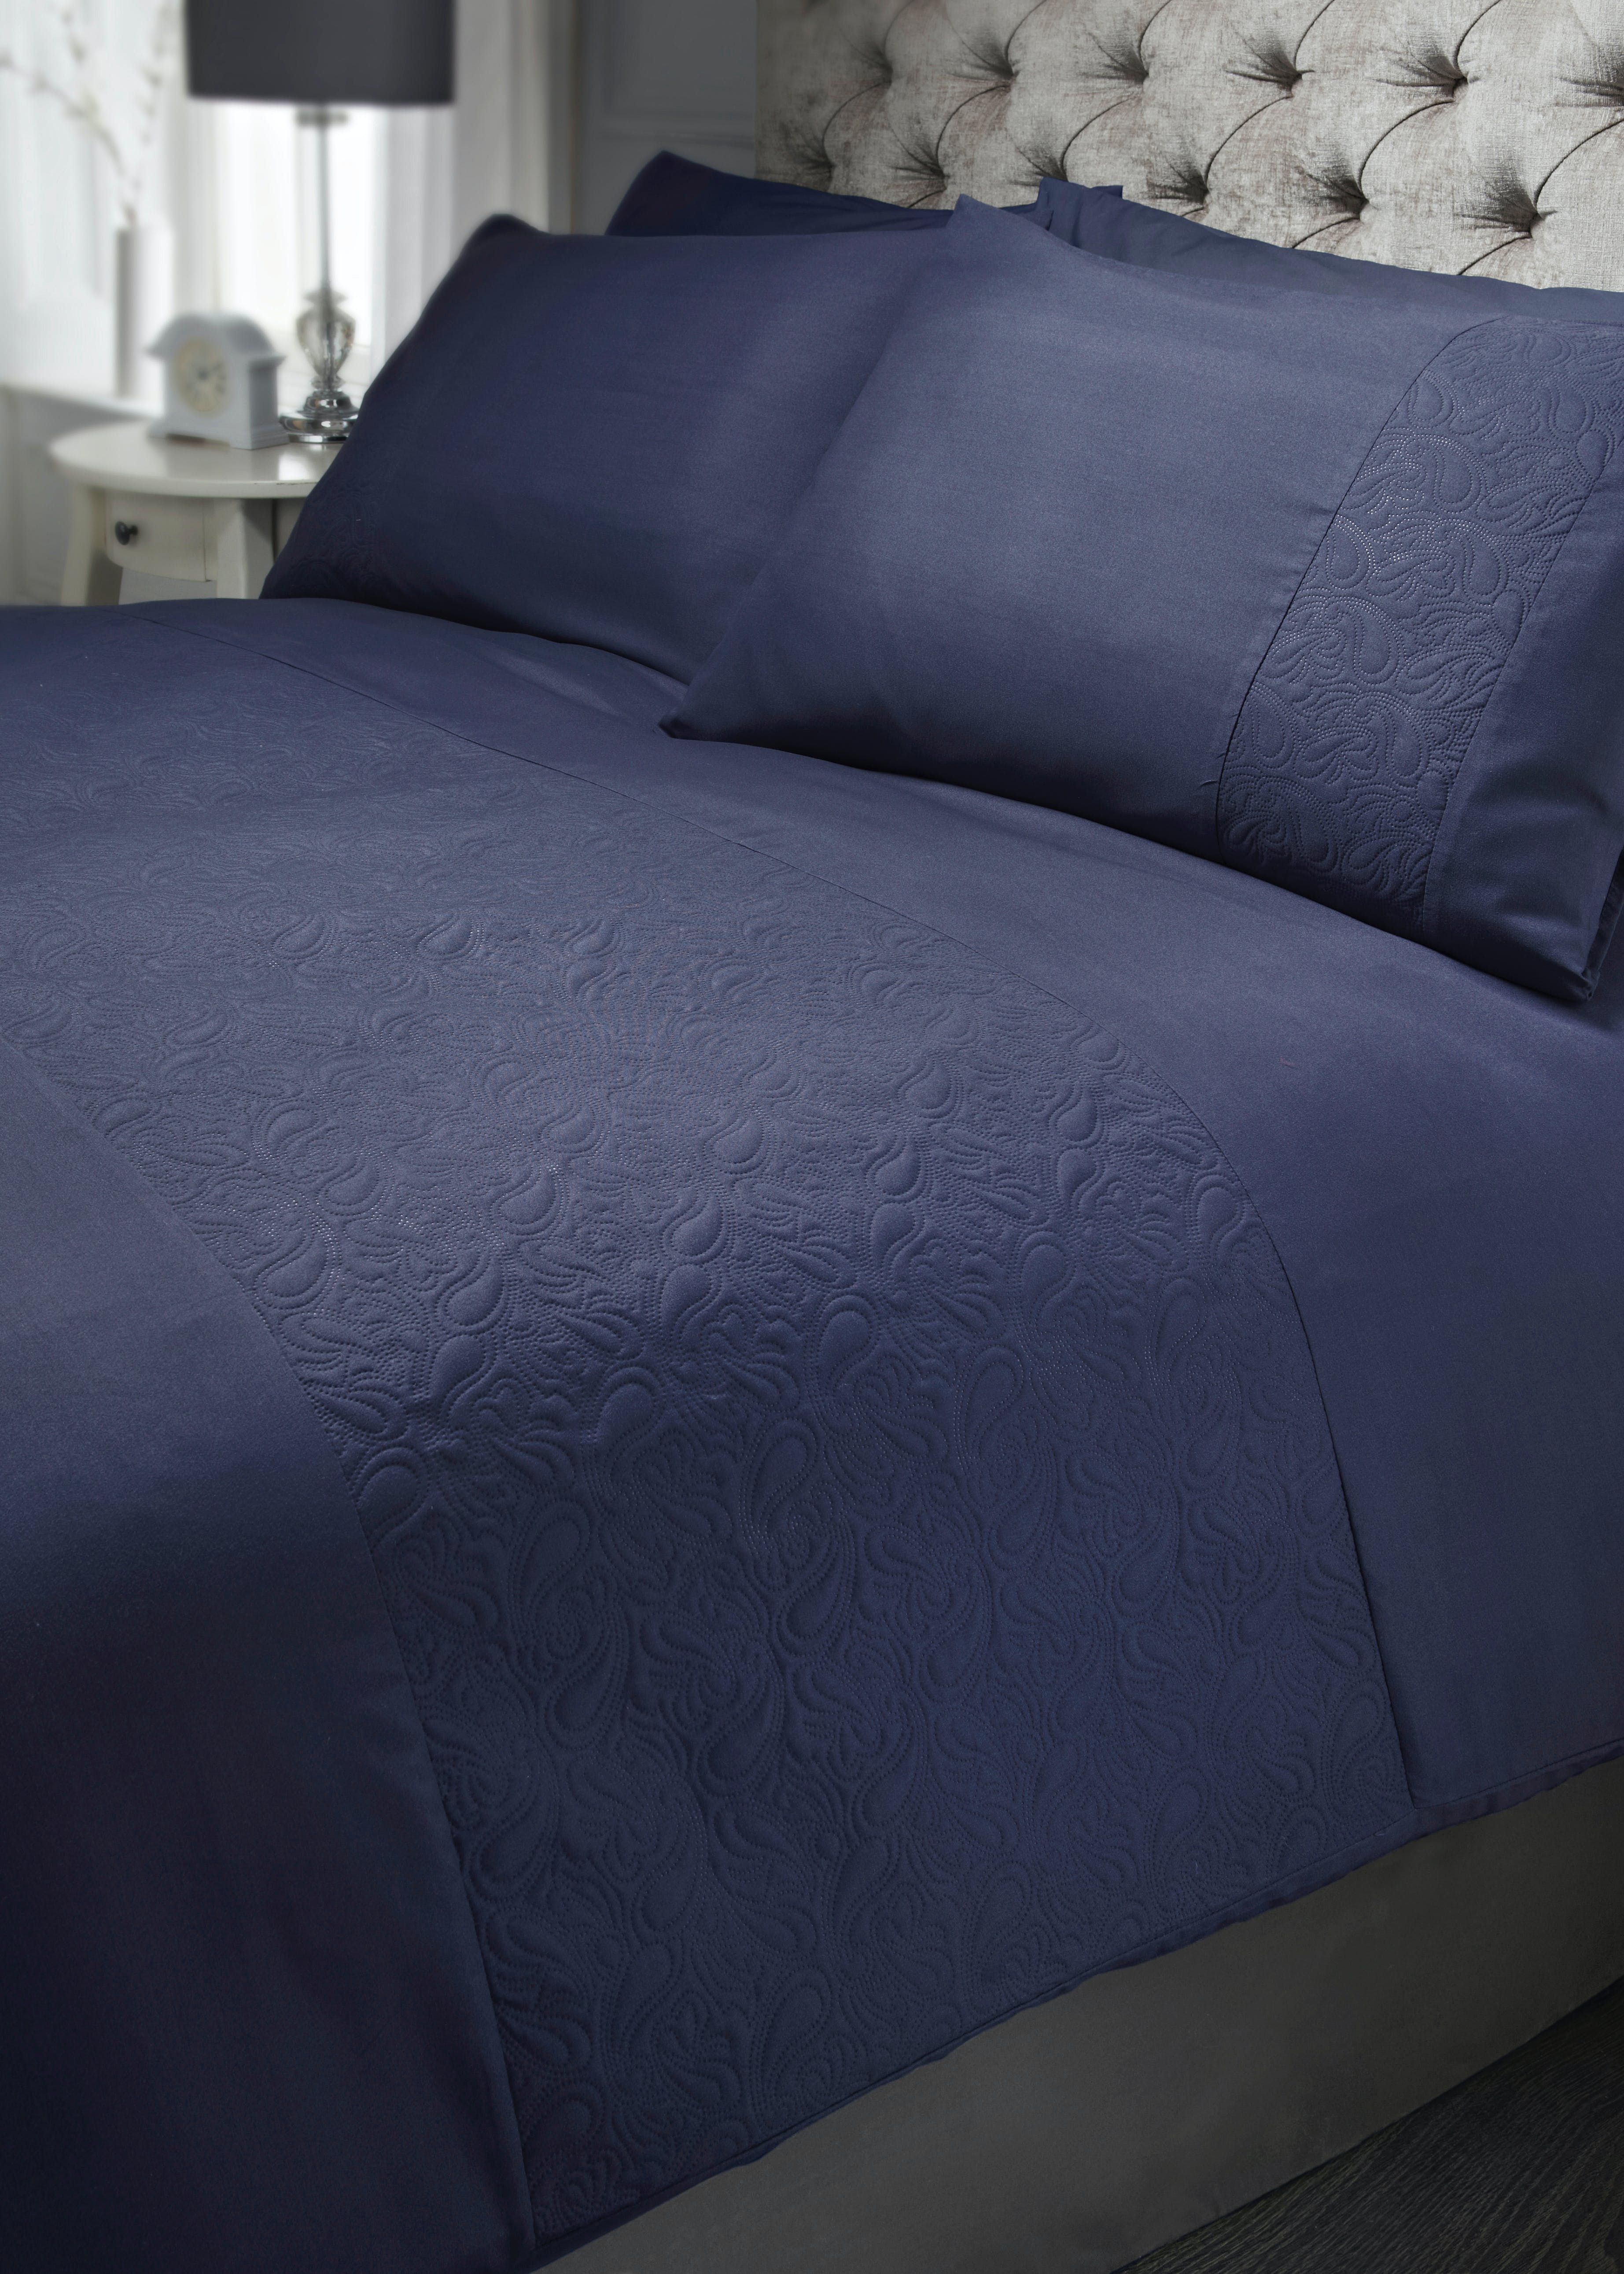 quilted duvet cover. Quilted Duvet Cover A